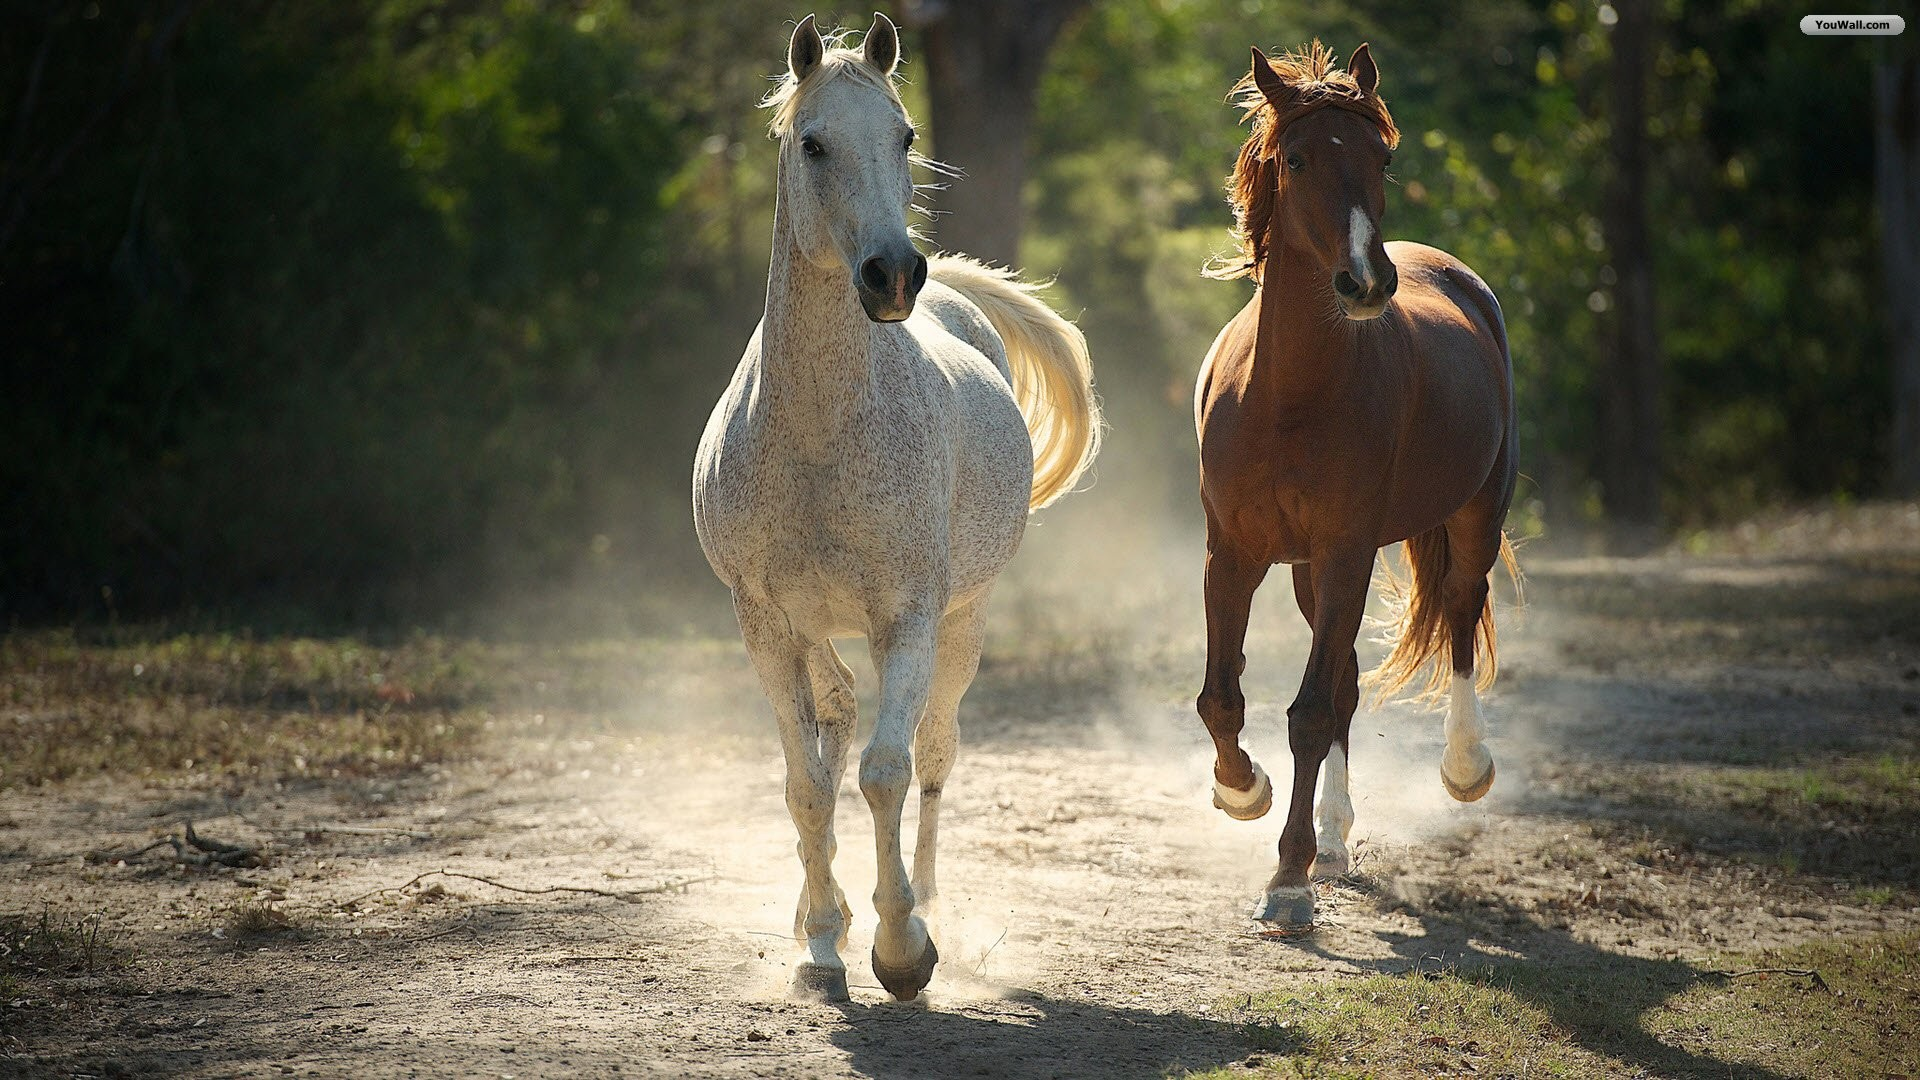 Running Horses Wallpaper (63+ images) - photo#38